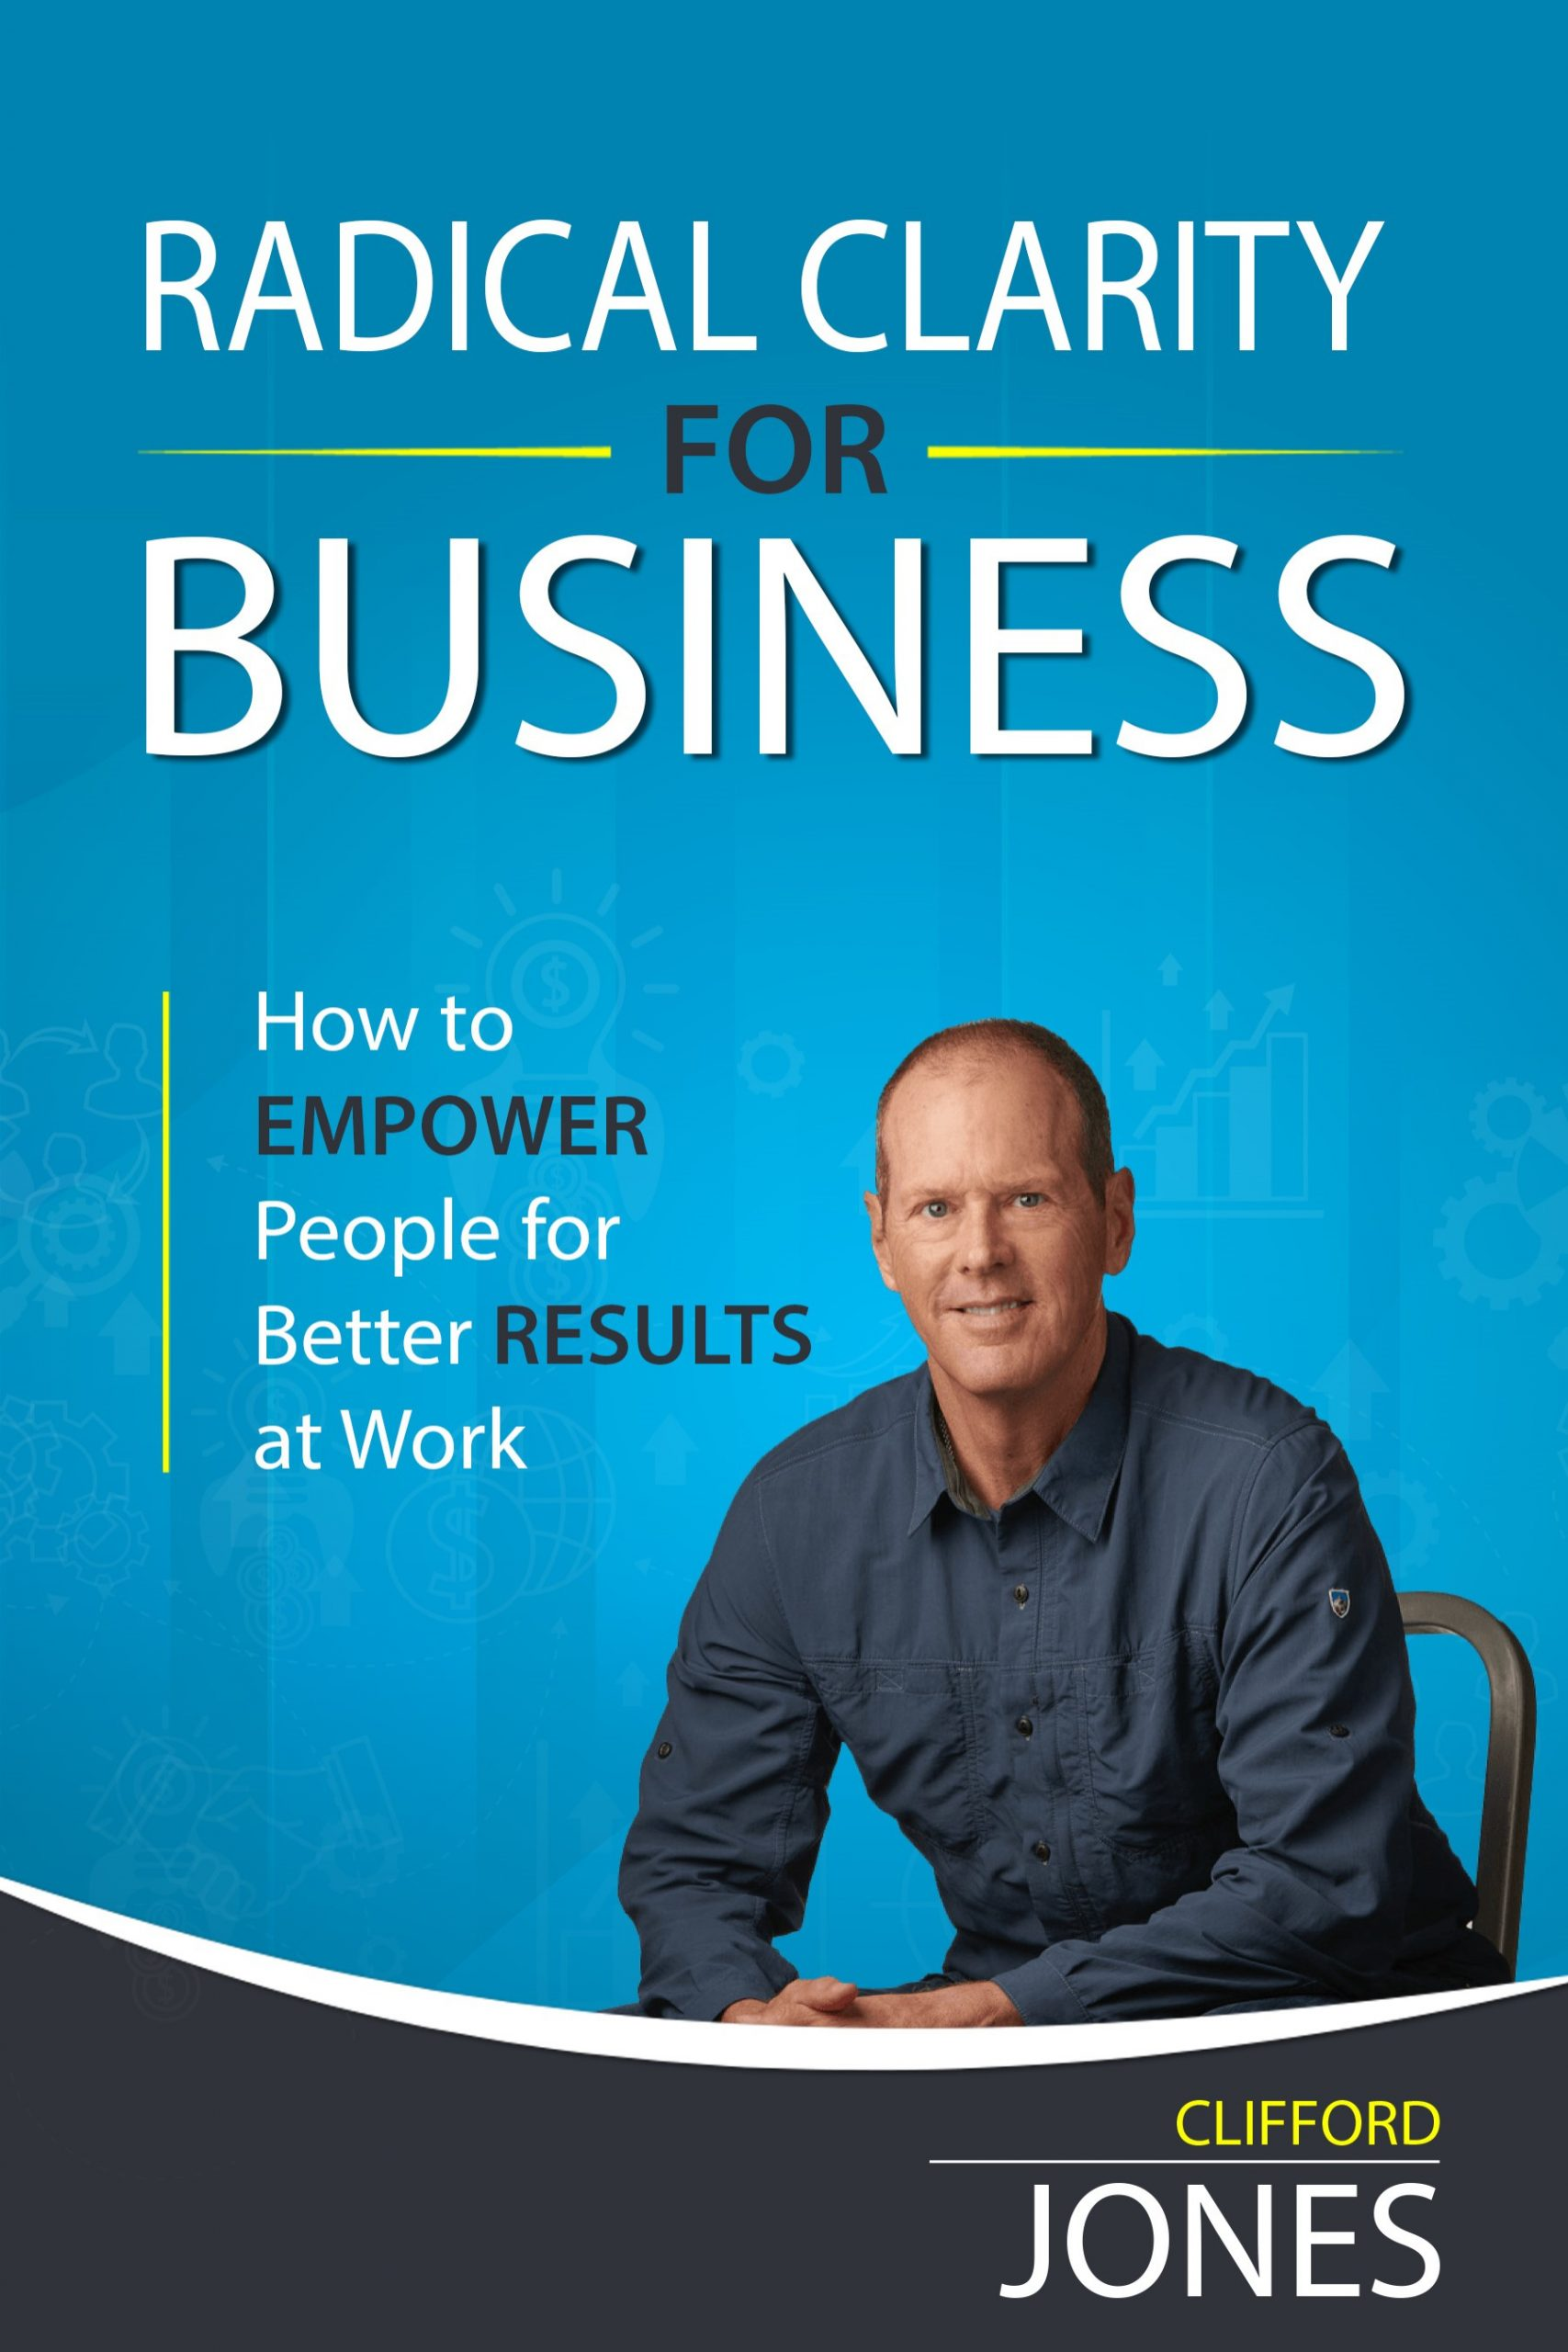 Radical Clarity for Business Ebook Cover by Clifford Jones